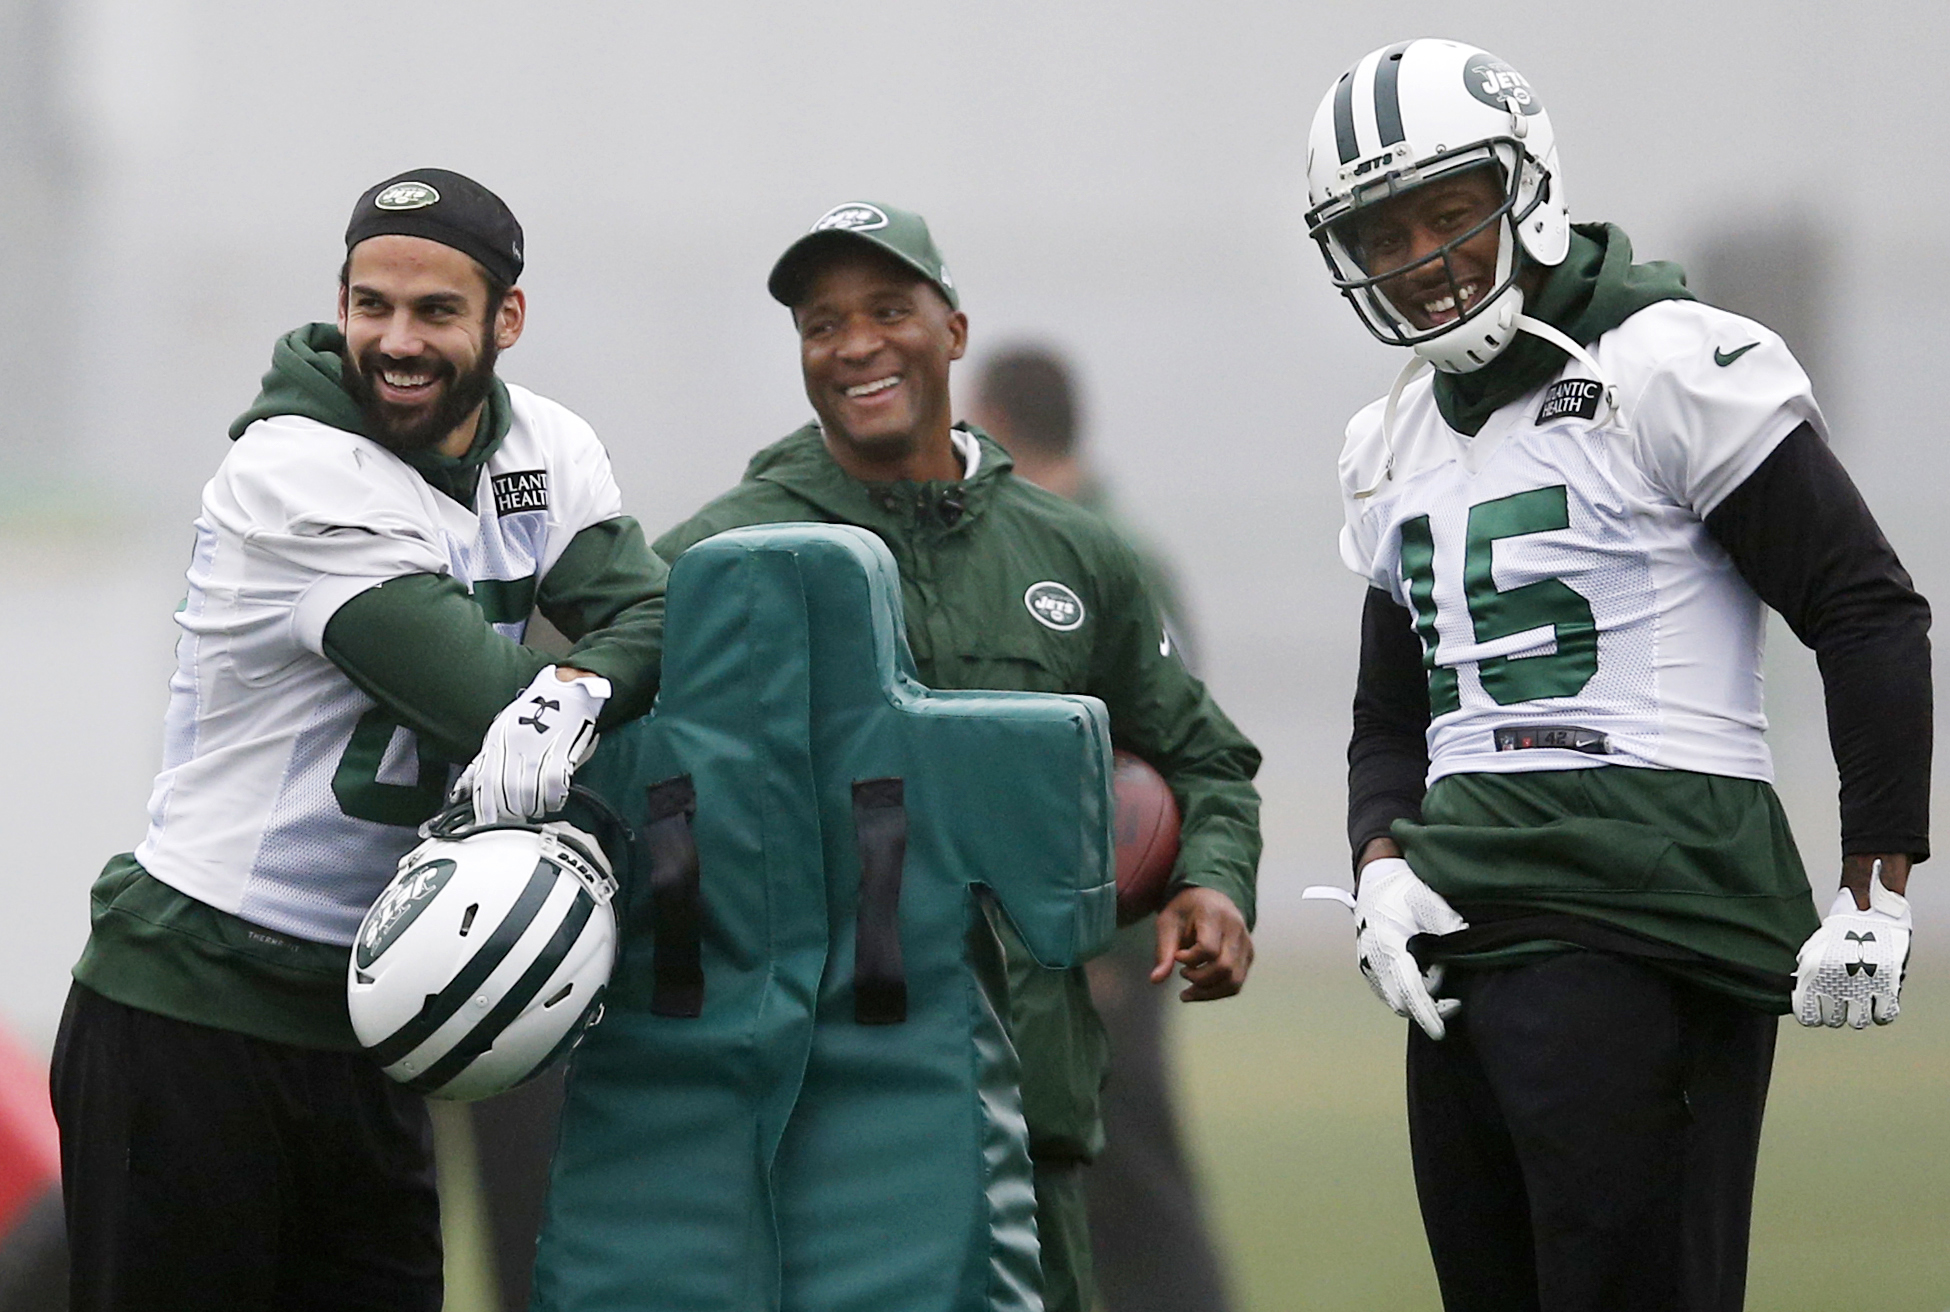 New York Jets wide receivers Eric Decker, left, and Brandon Marshall (15) and wide receivers coach Carl Dorrell share a laugh before NFL football practice, Wednesday, Dec. 30, 2015, in Florham Park, N.J.   The Jets are preparing for Sunday's game against